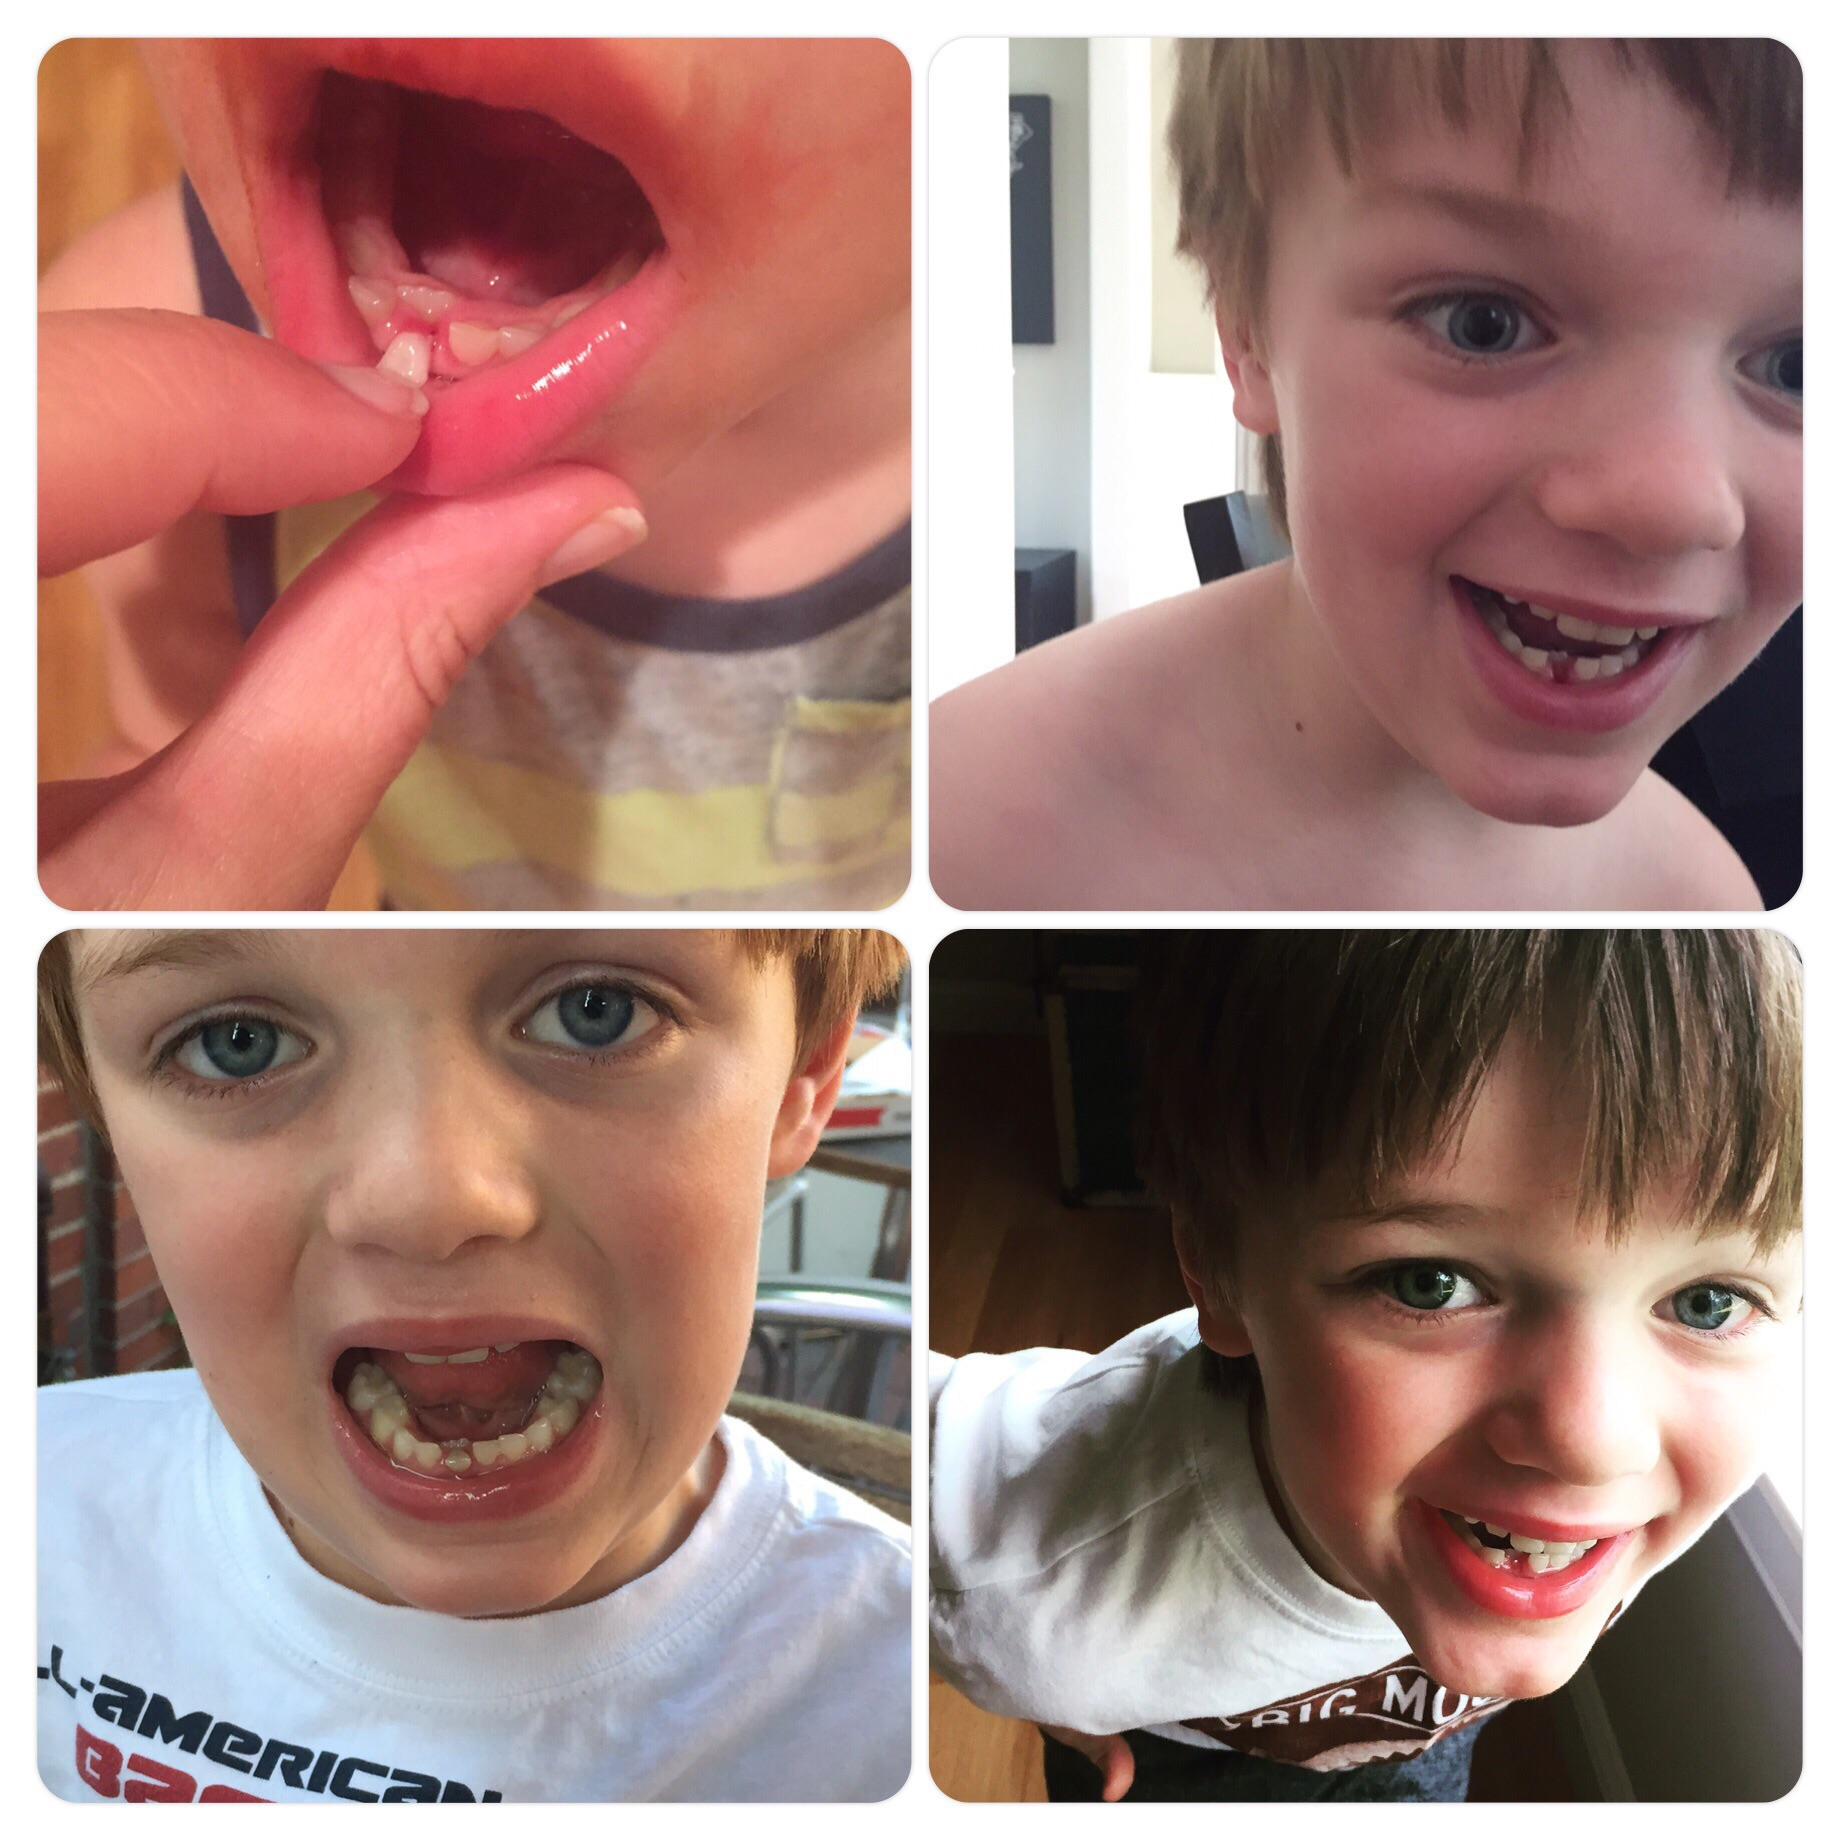 Tooth business. Nicholas pulled it out himself.  Going rate $3.50.